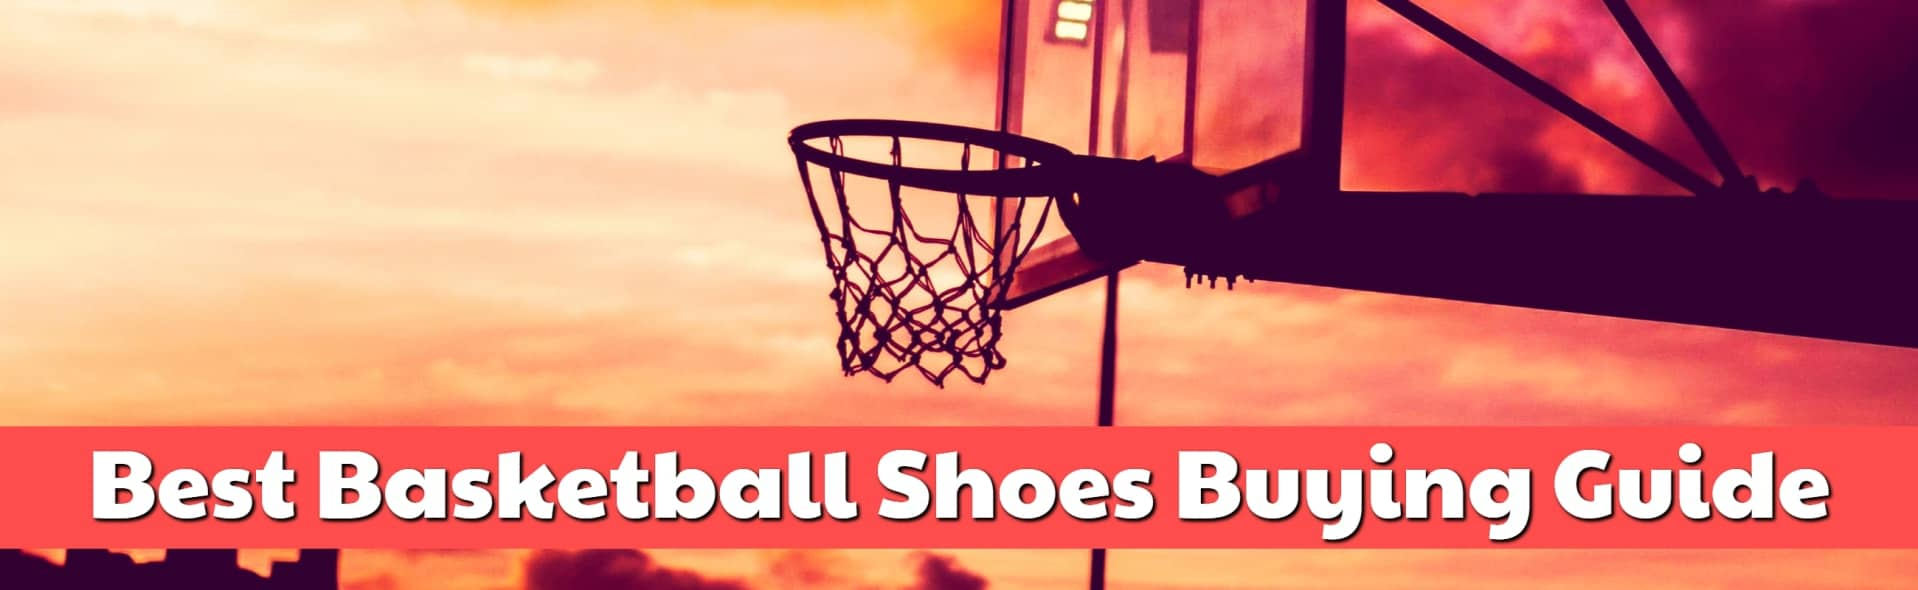 Best Basketball Shoes Buying Guide